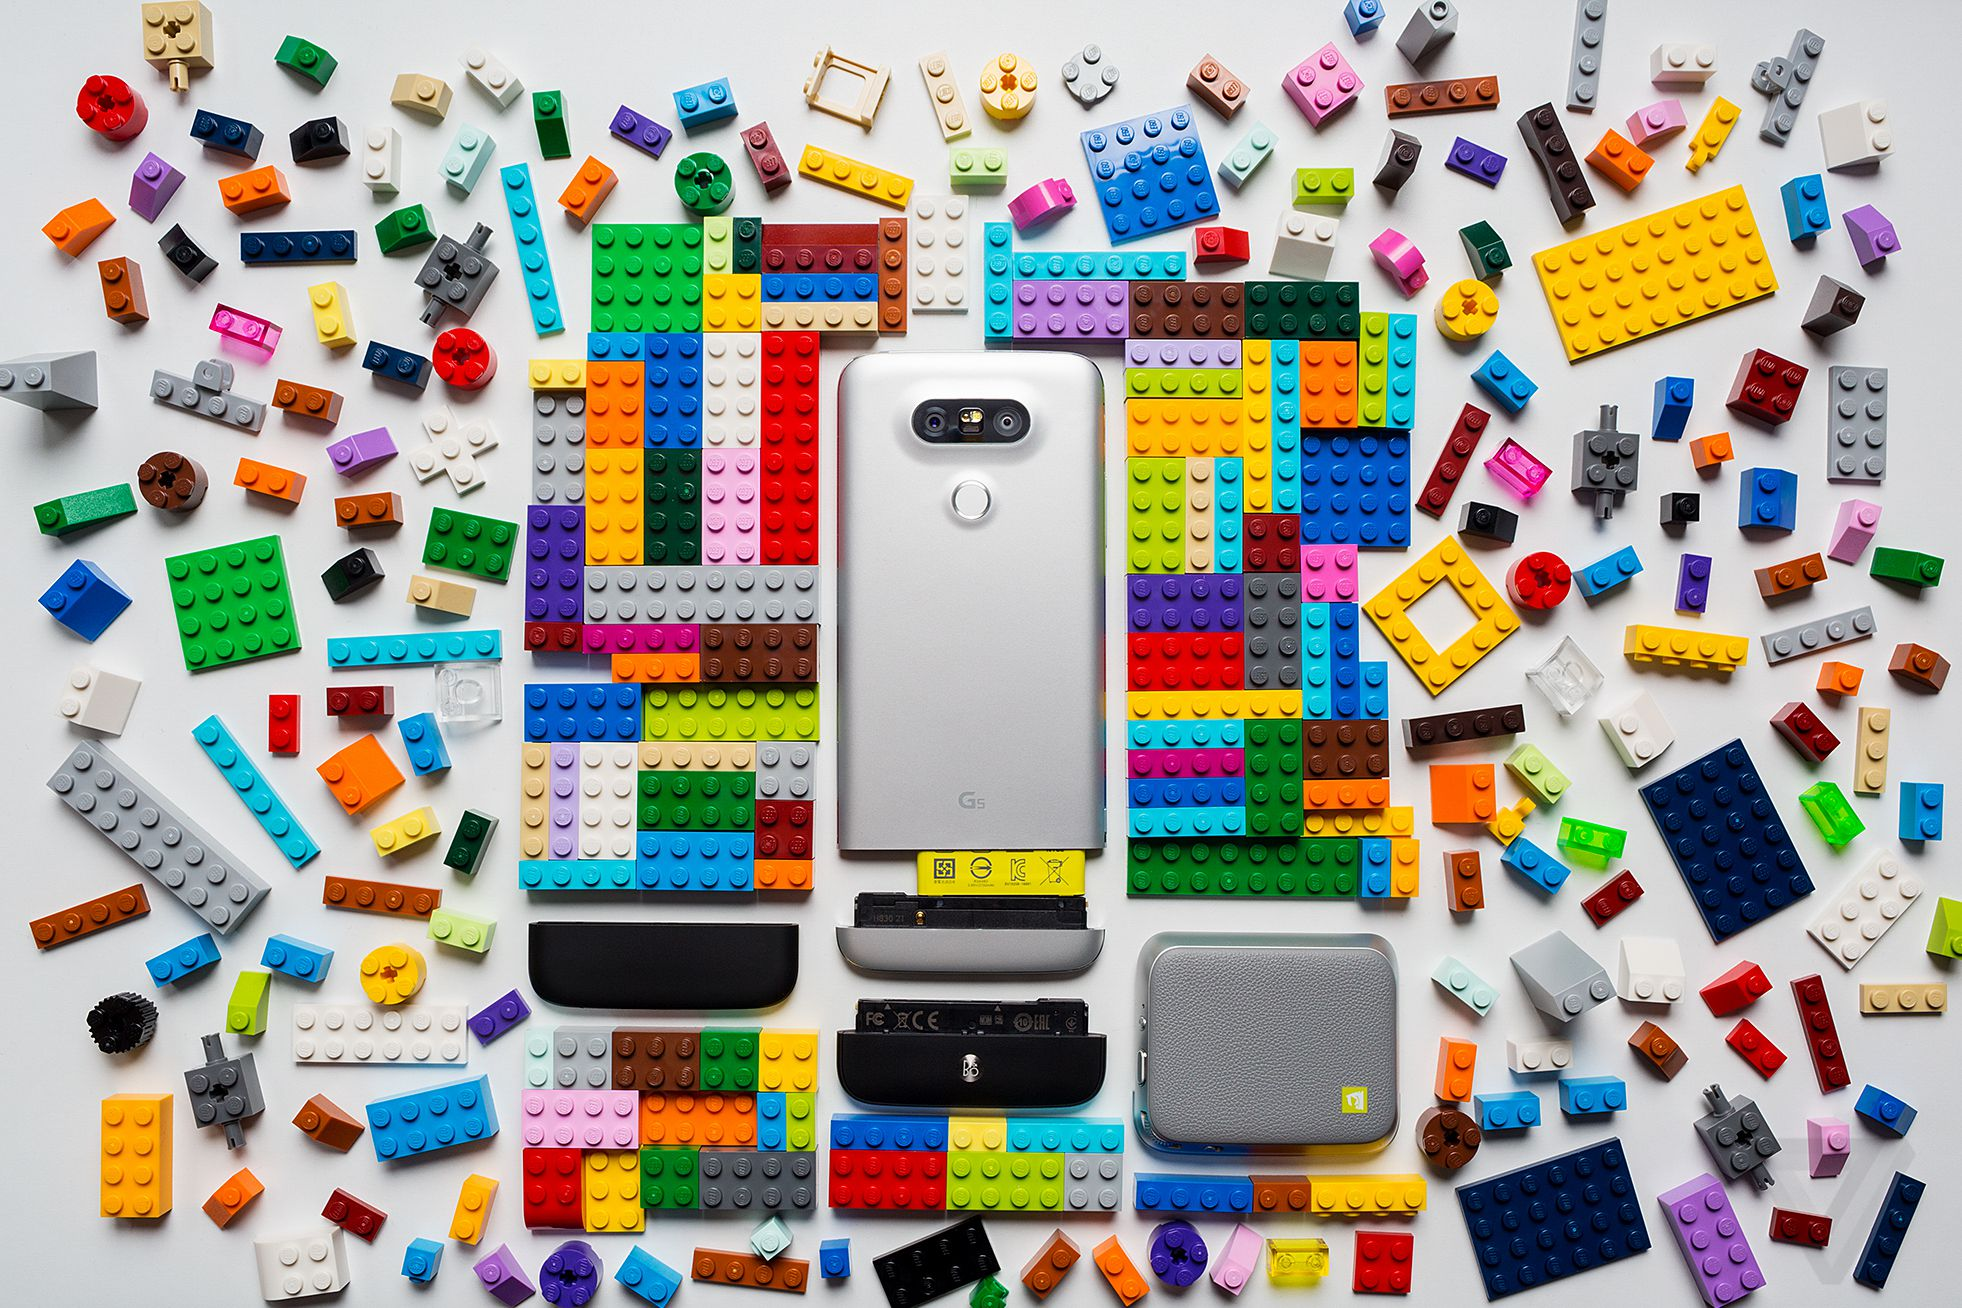 592b78af8909 A big part of me hoped that the LG G5 would be an awesome phone just by  itself. That its optional extras would be something I could ignore and just  get on ...